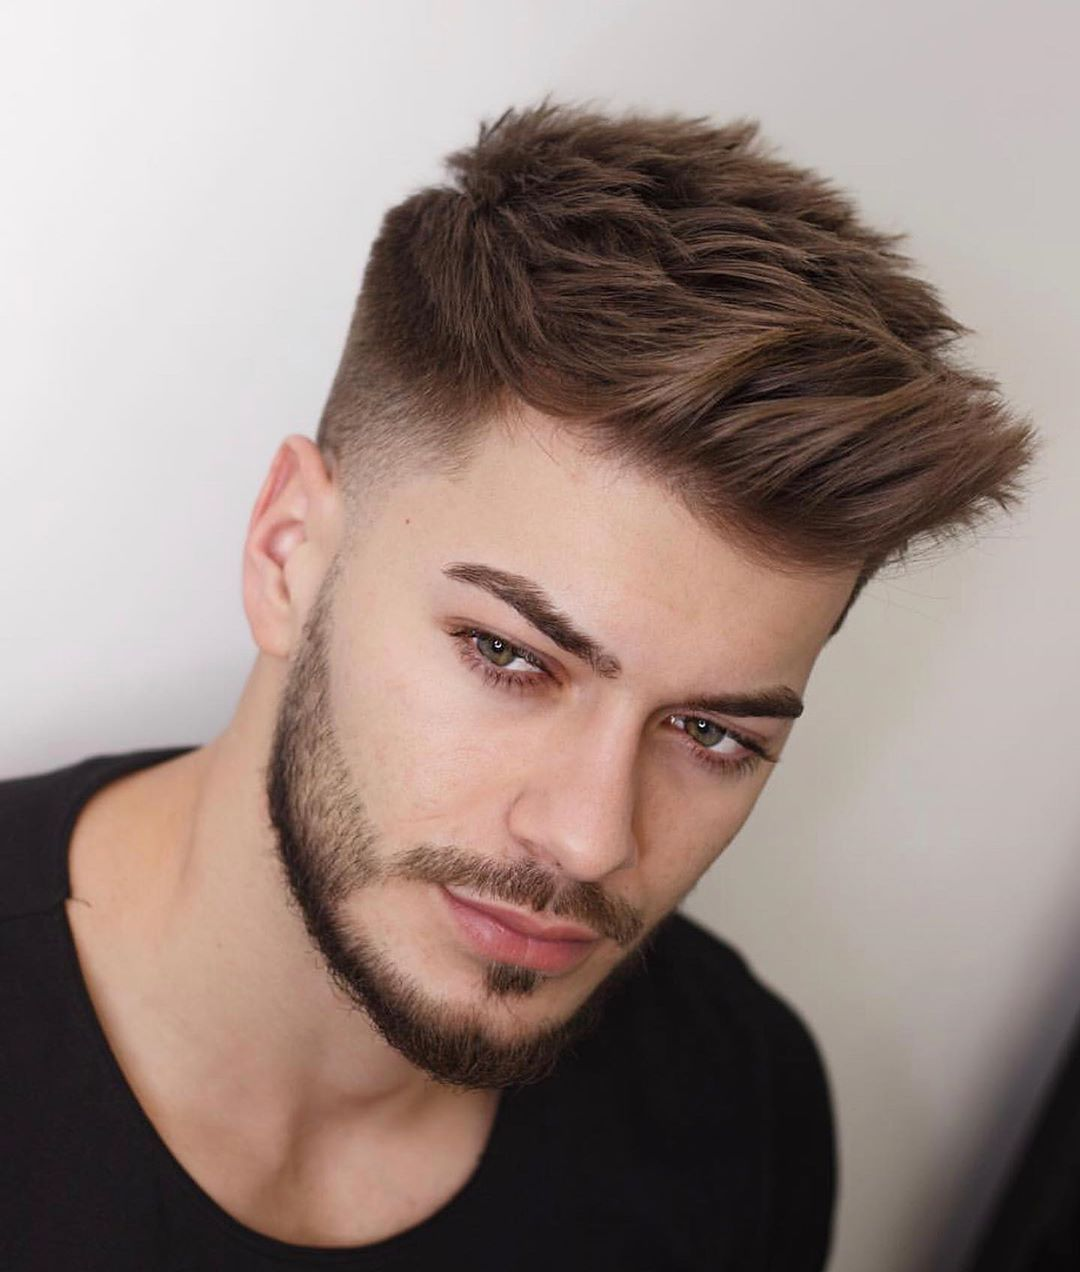 Mackformen Hydroclay And Shapeshifter Pomade Hairwax In 2020 Men Haircut Styles Gents Hair Style Haircuts For Men